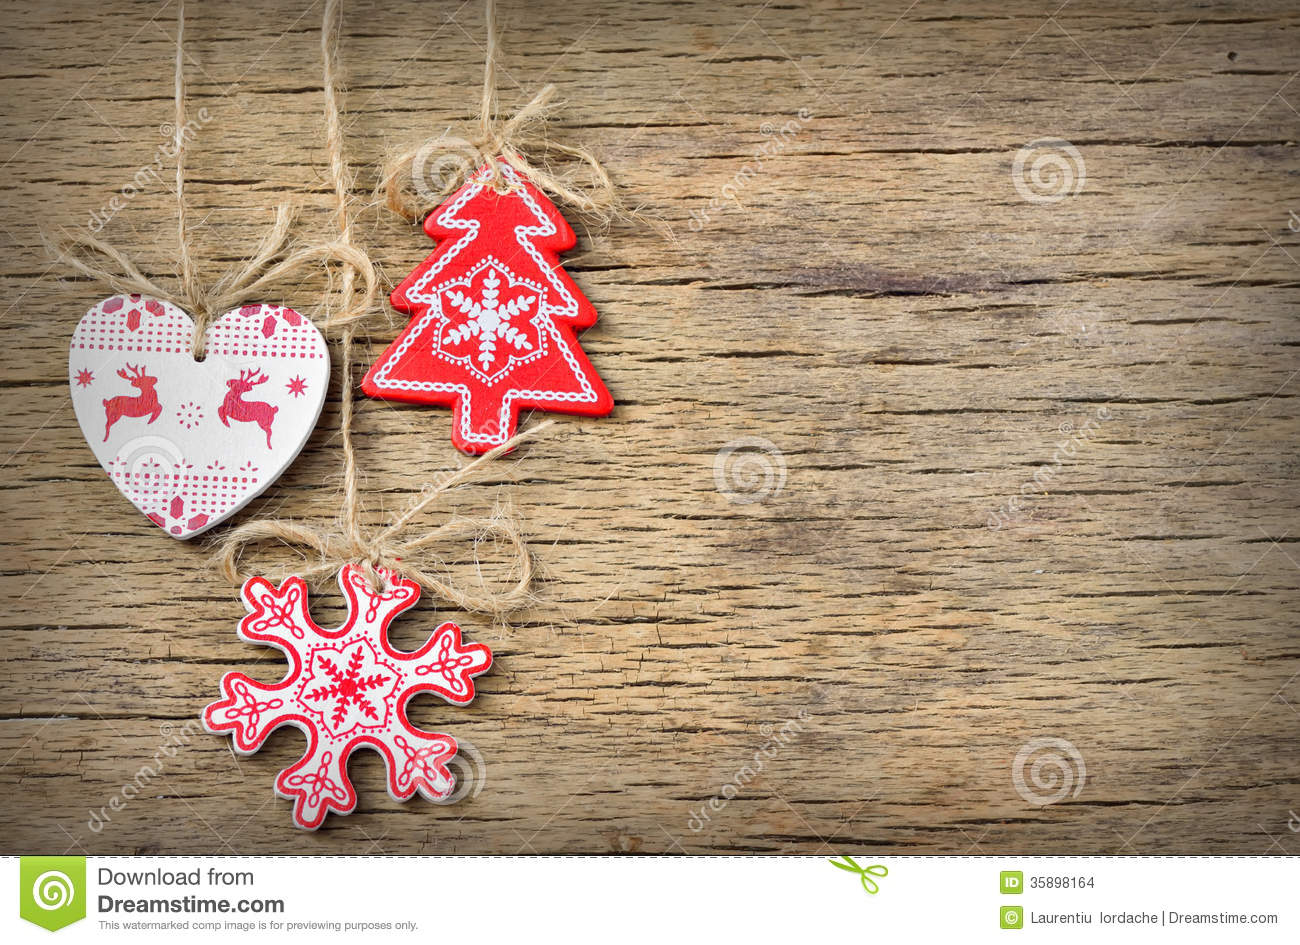 Rustic Christmas Decoration Stock Images - Image: 35898164